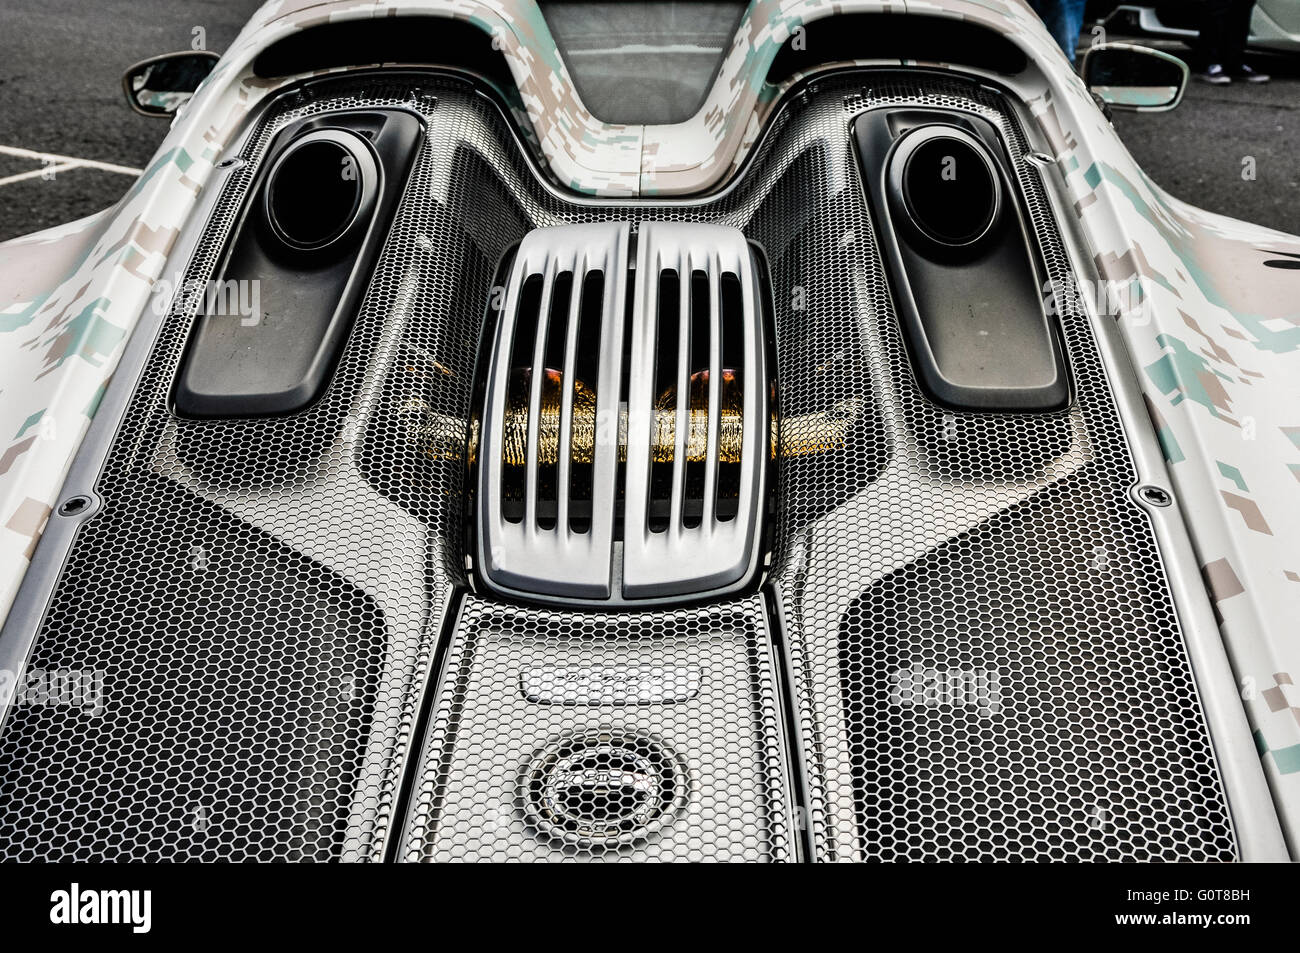 Ion Engine Stock Photos Images Alamy Porsche 918 Spyder Diagram Plug In Hybrid Hypercar 887 Hp 652 Kw